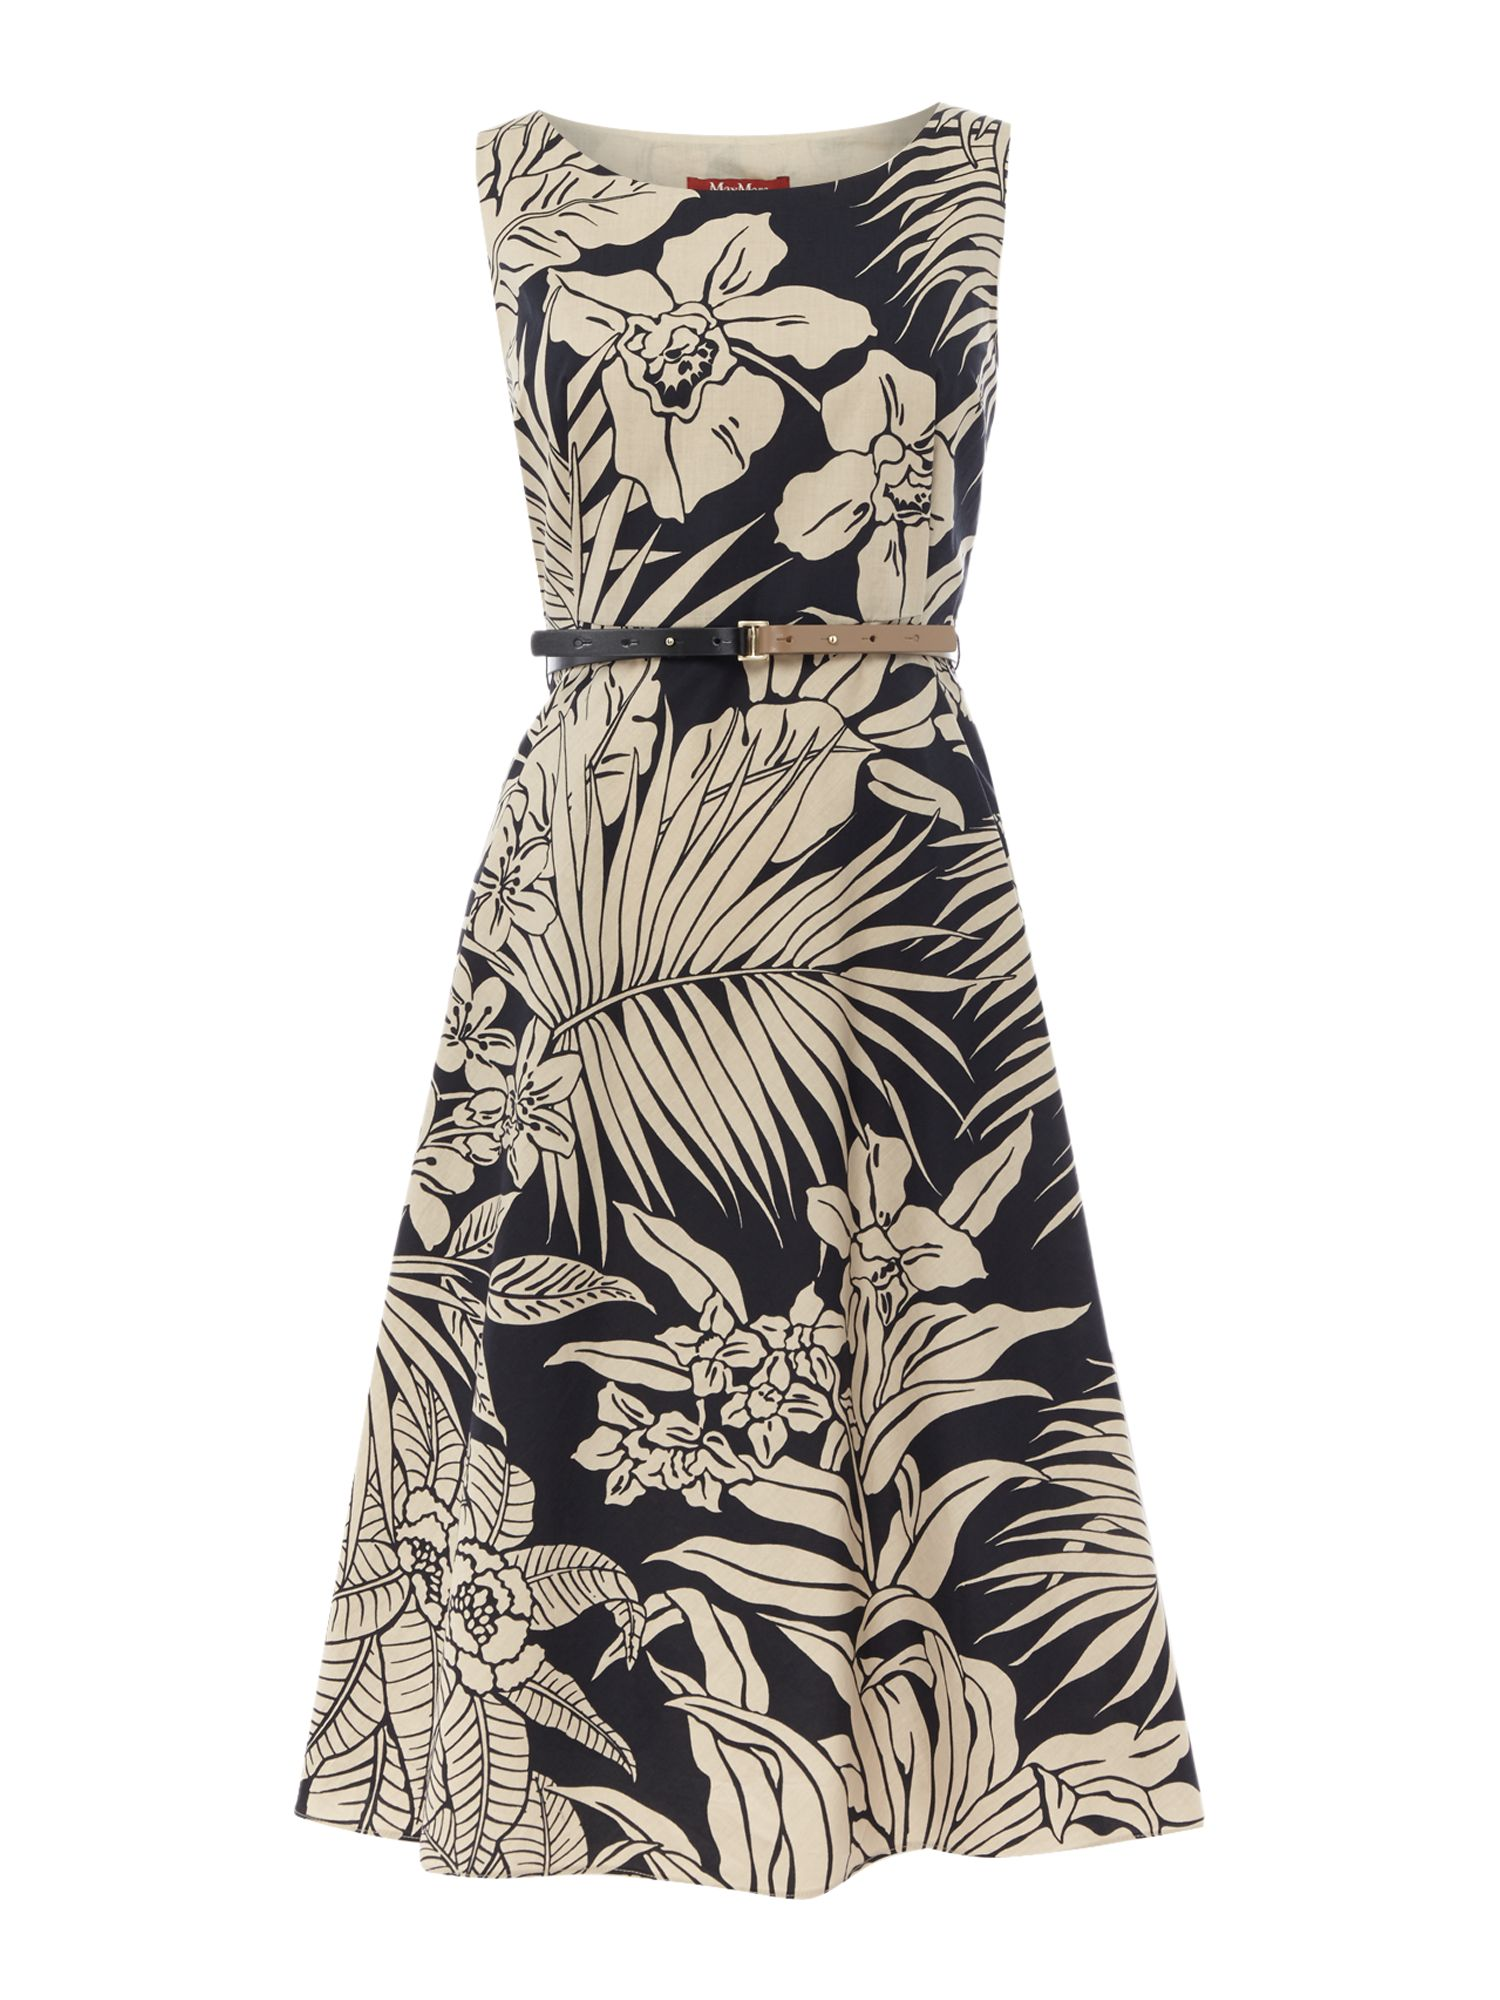 Max Mara Studio DETROIT sleeveless palm print fit and flare dress, Black